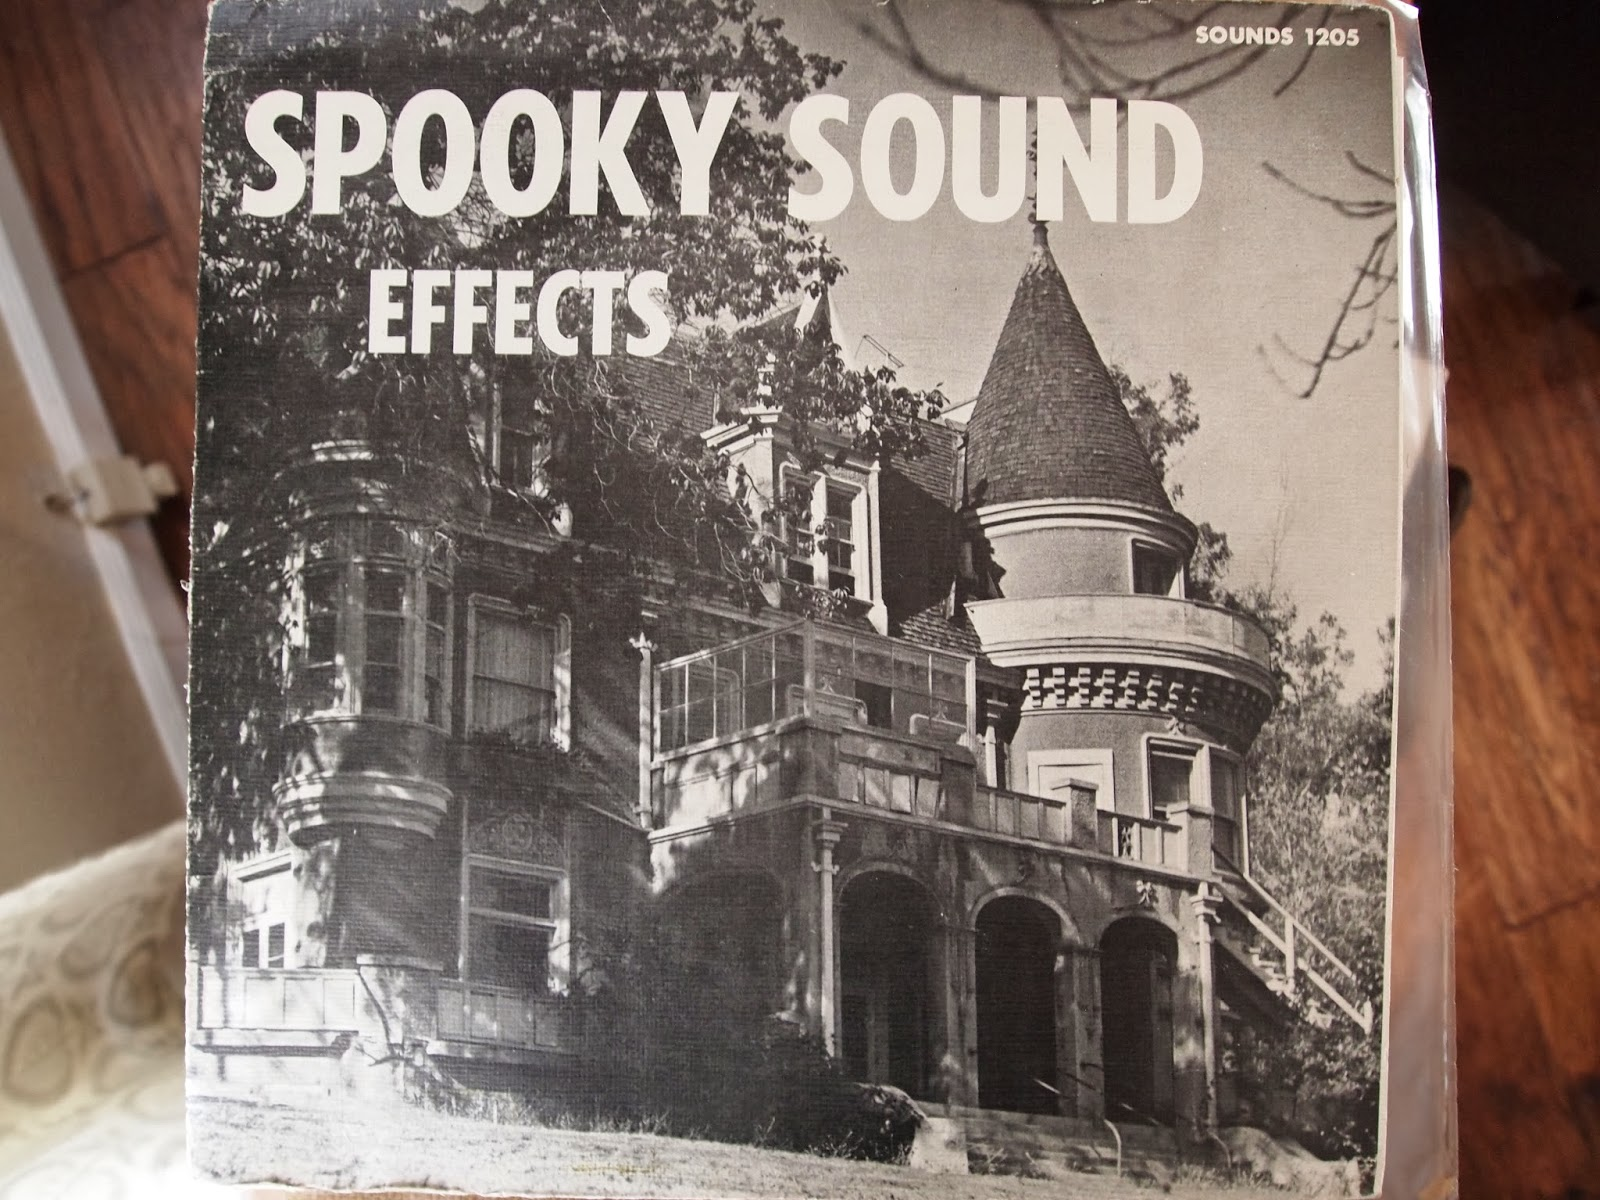 starving daughter s vinyl impressions spooky sound effects spooky sound effects sounds1205 197 rip 320k rarest halloween record ever